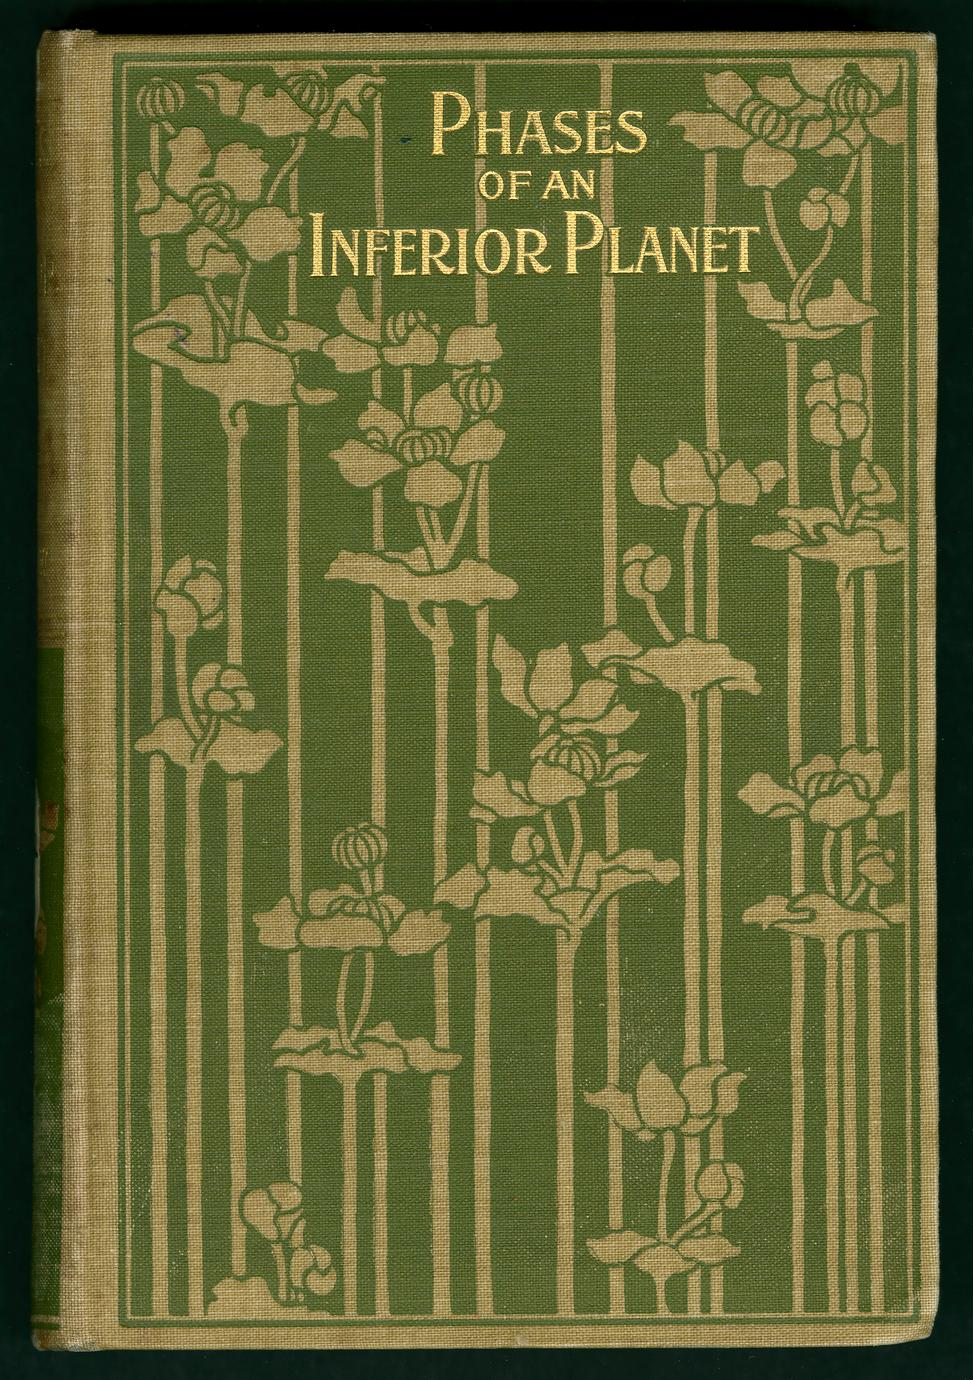 Phases of an inferior planet (1 of 2)